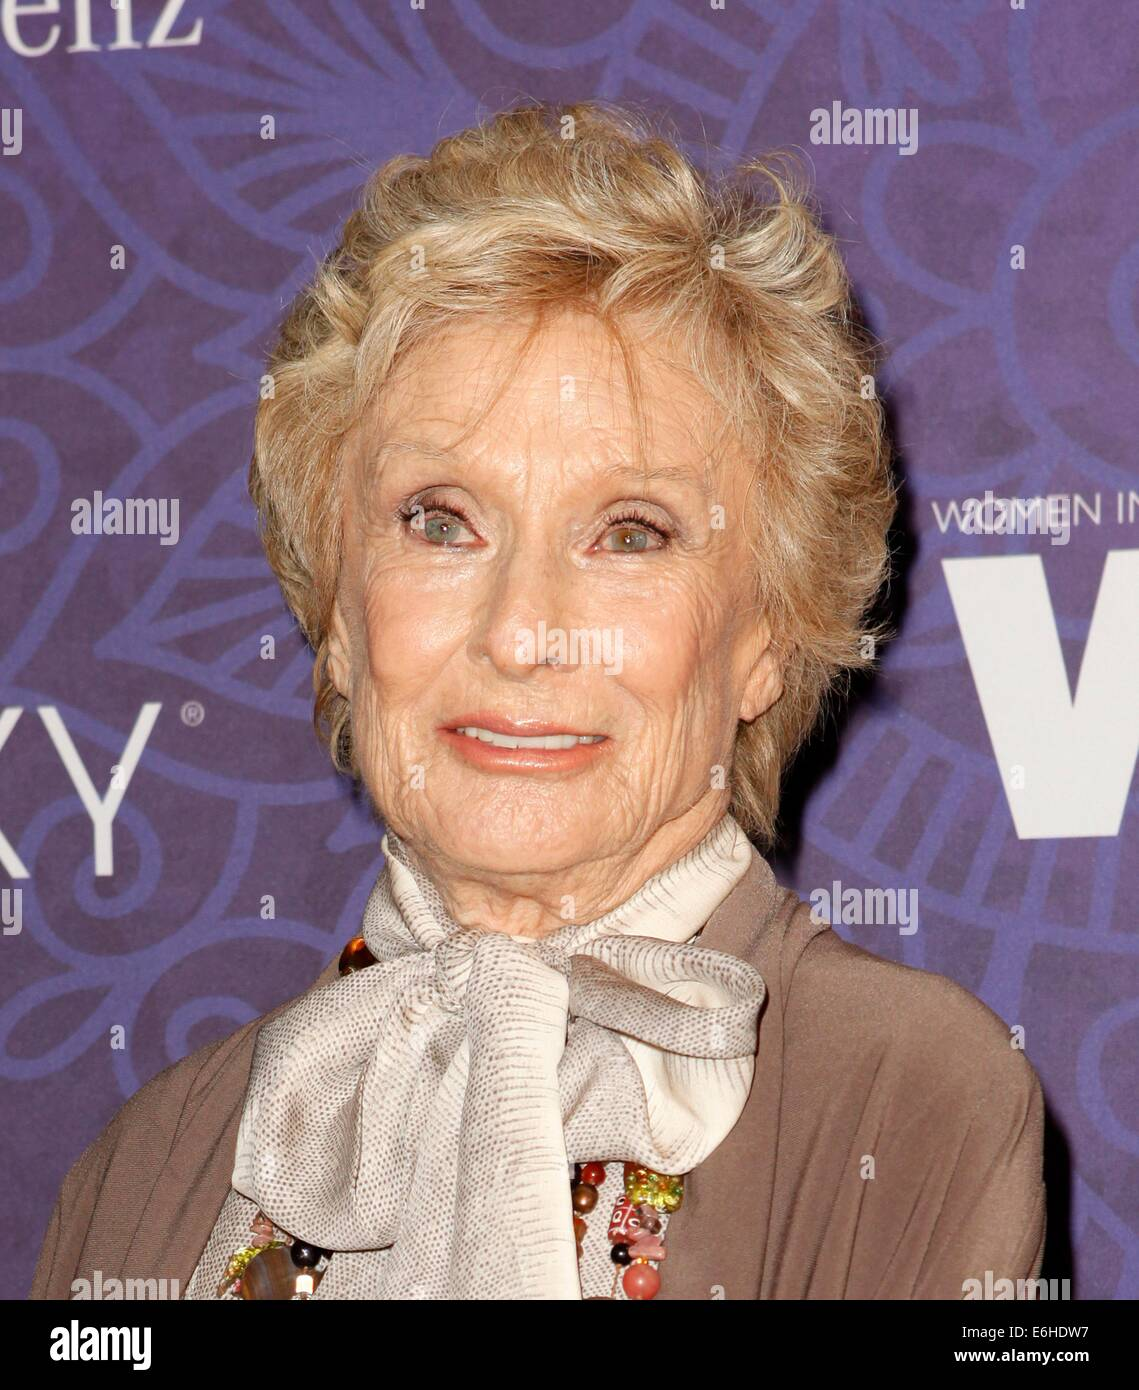 Cloris Leachman Emmy Stock Photos & Cloris Leachman Emmy Stock